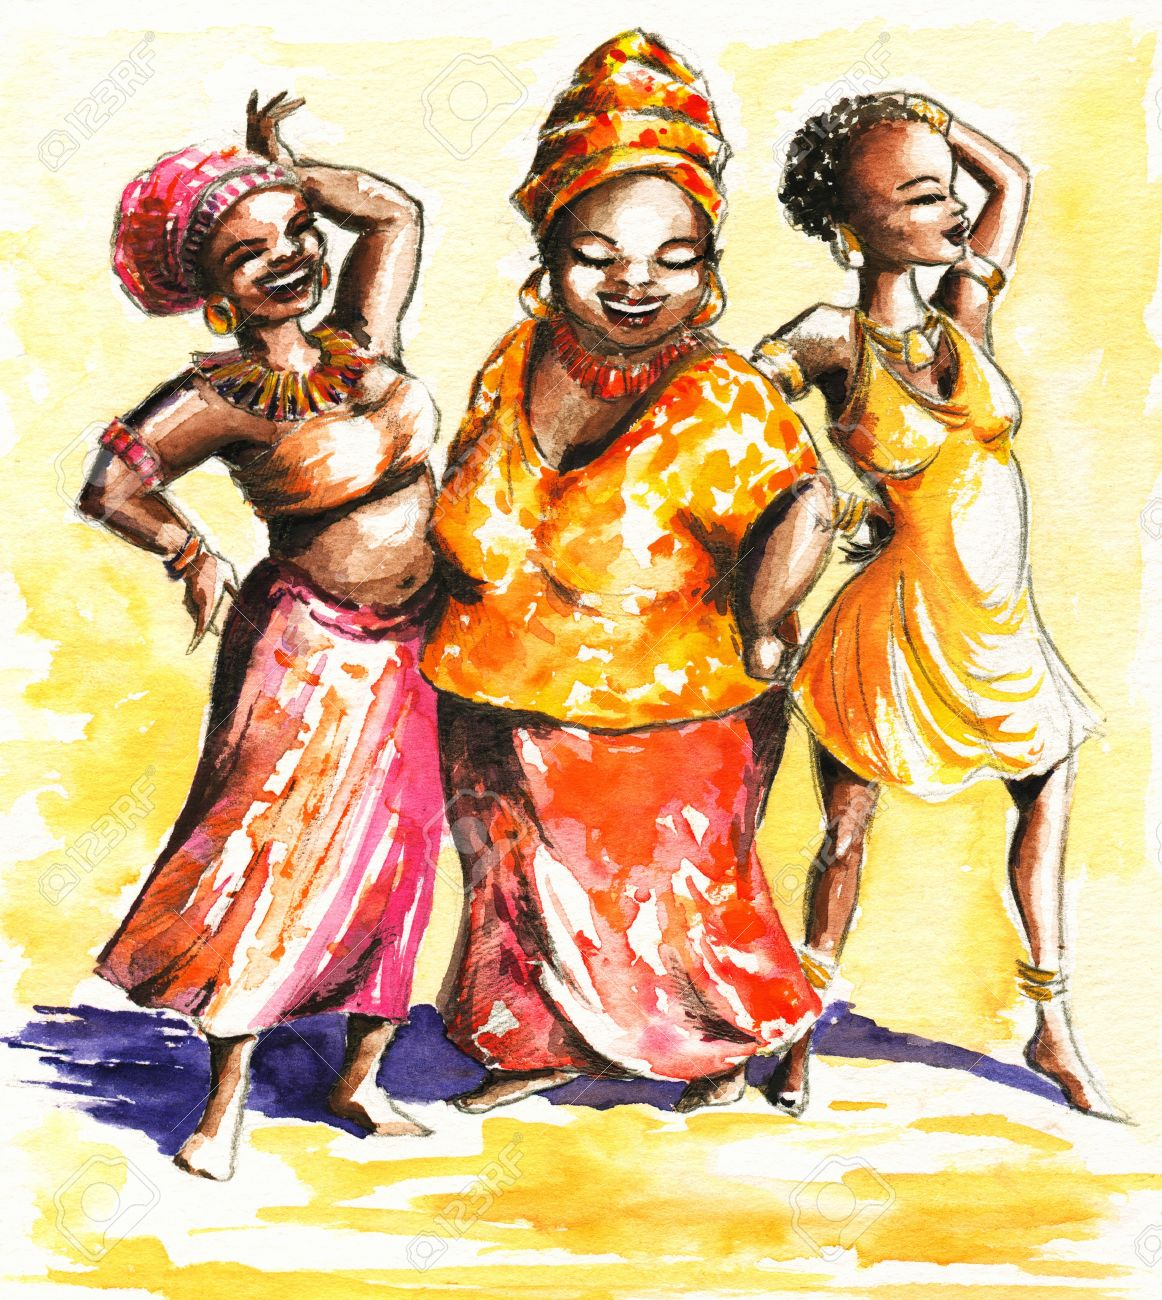 Three Happy Dancing African Women Painting Stock Photo Picture And